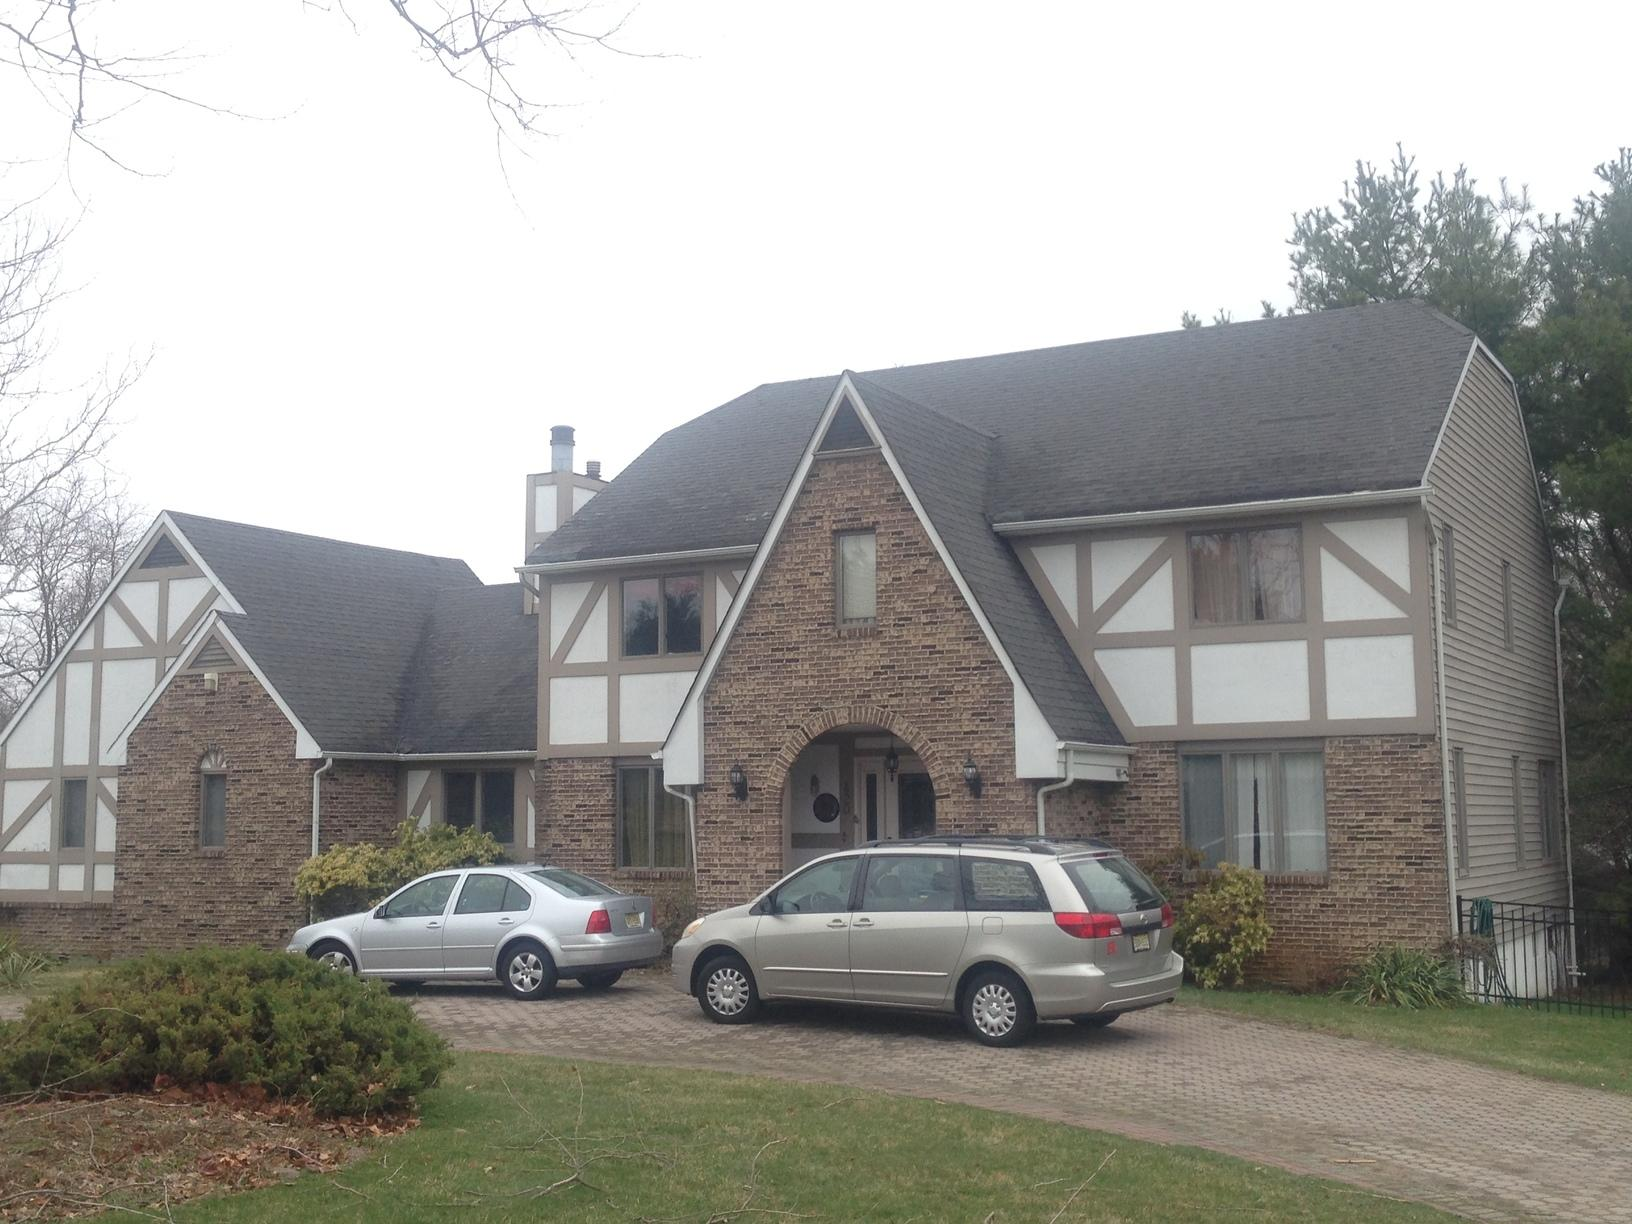 Freehold NJ Roof Replacement Amber Color Roof - Before Photo